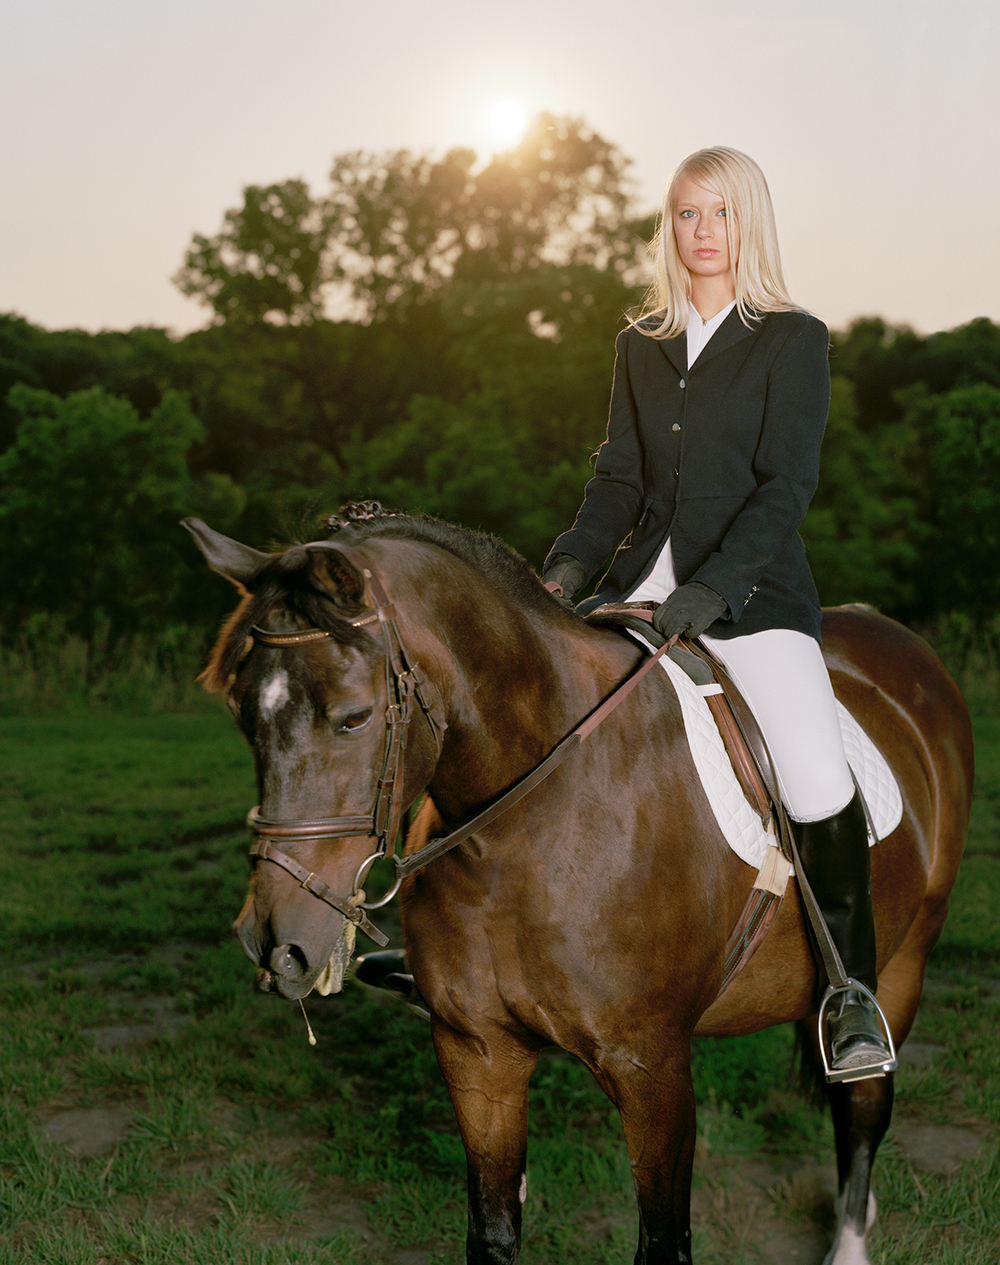 Untitled (Ashley on Horse)